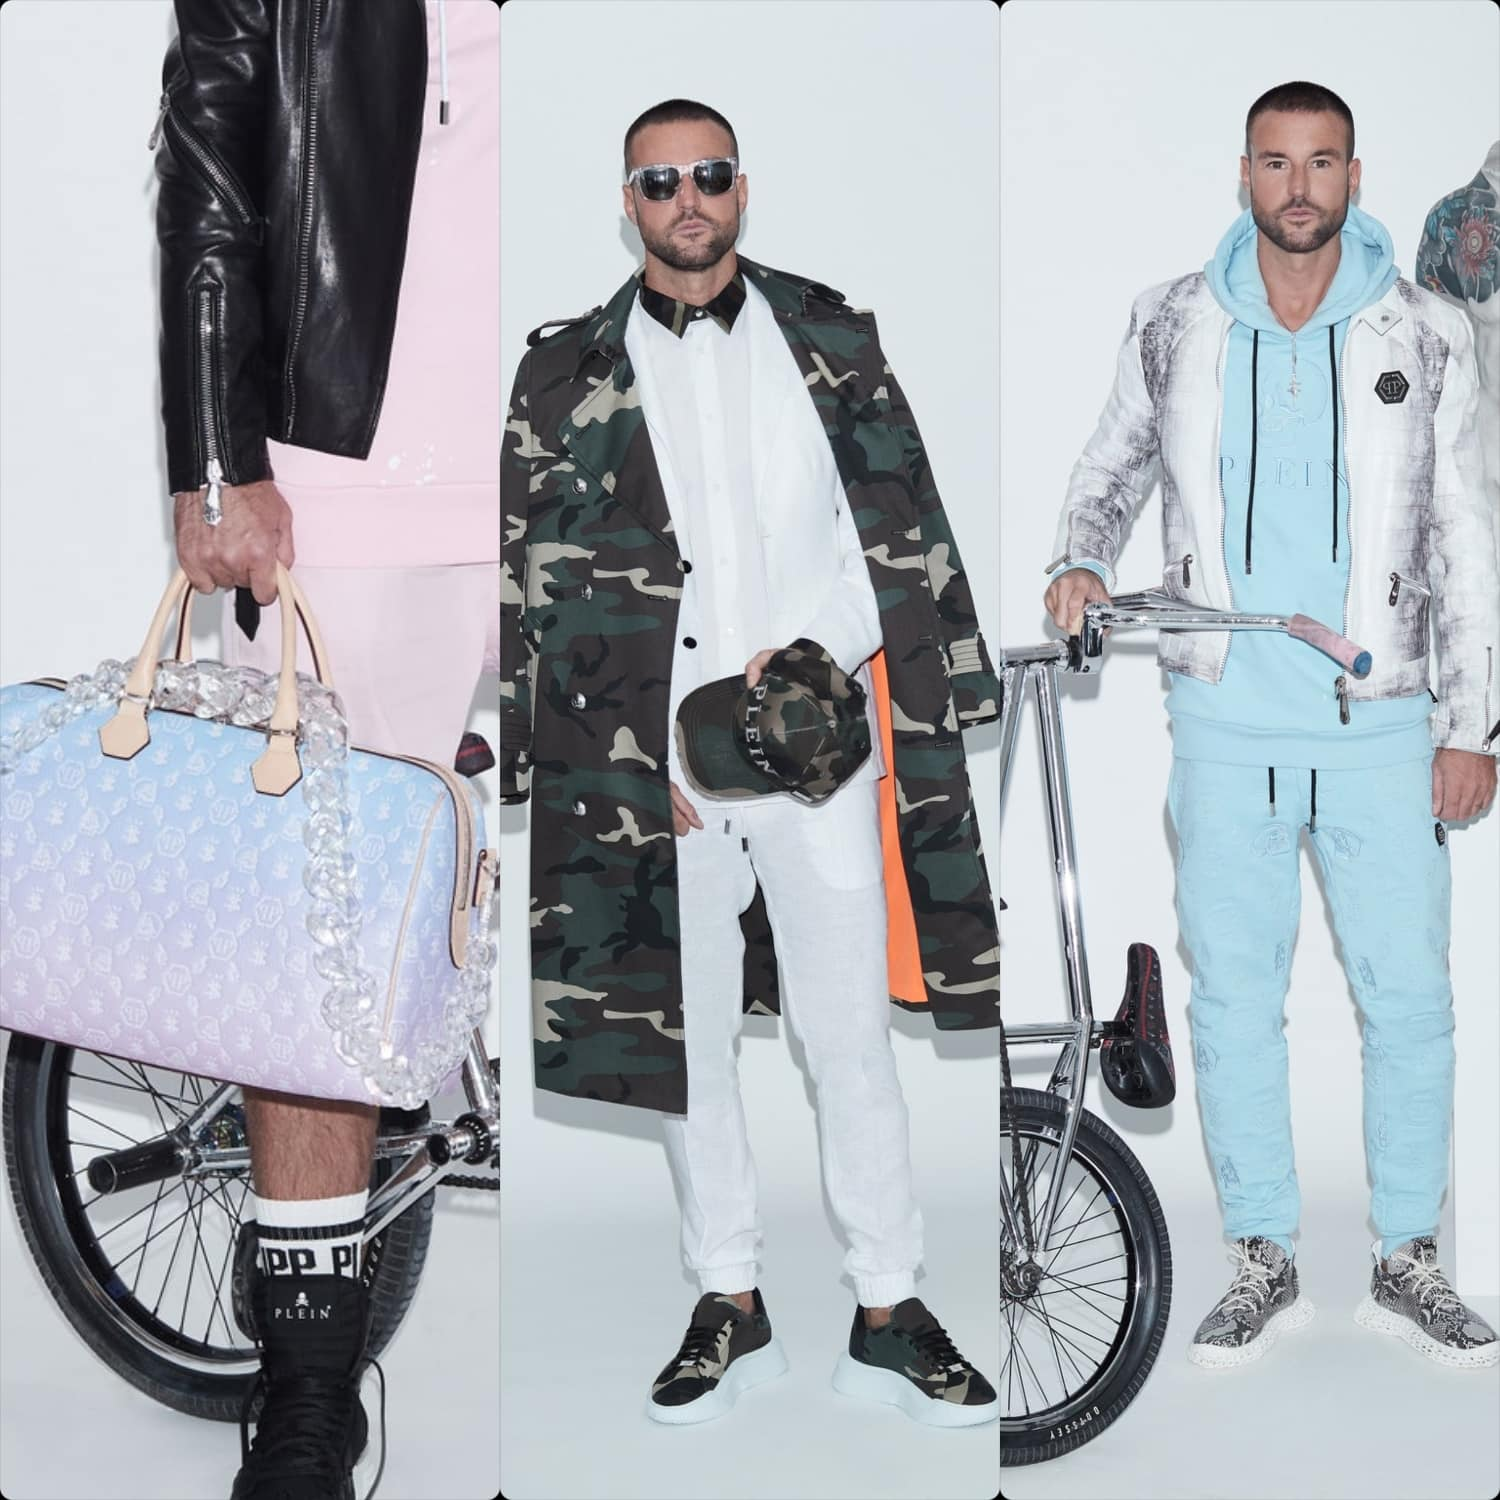 Philipp Plein Spring Summer 2021 Men Milan Digital Fashion Week. RUNWAY MAGAZINE ® Collections. RUNWAY NOW / RUNWAY NEW